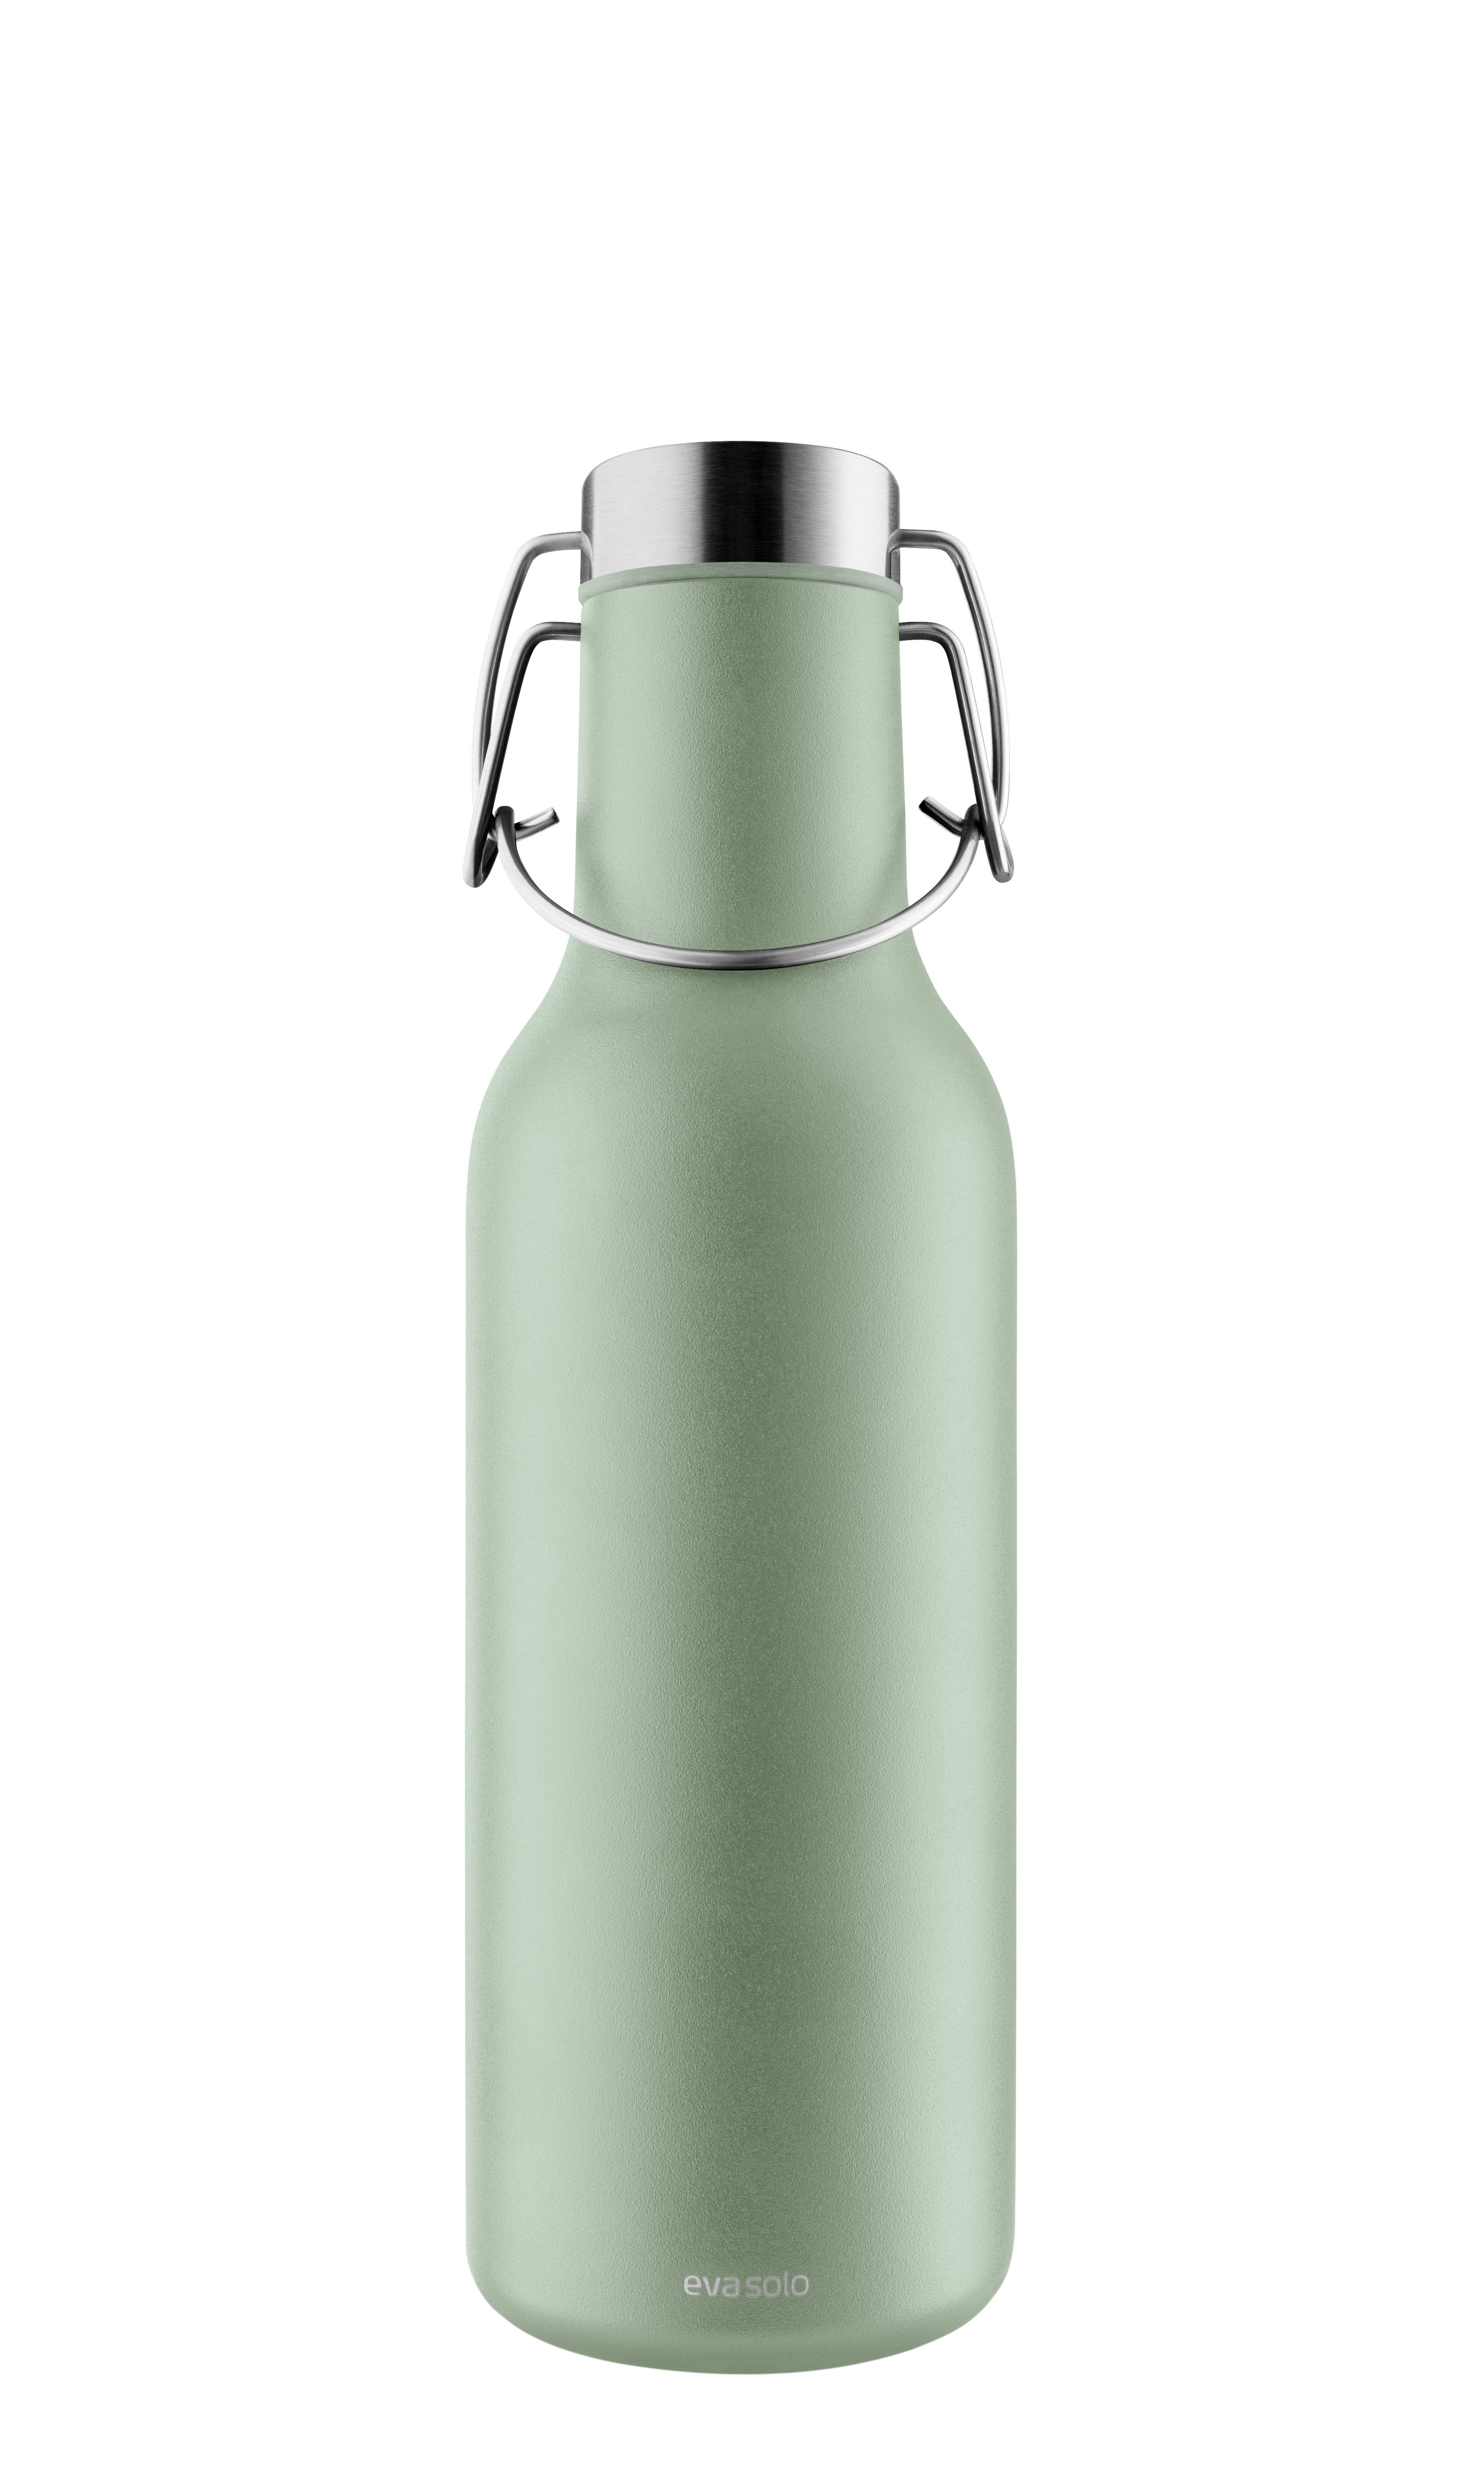 Tableware - Water Carafes & Wine Decanters - Cool Insulated bottle - / 0.7 L by Eva Solo - Eucalyptus green - Silicone, Stainless steel